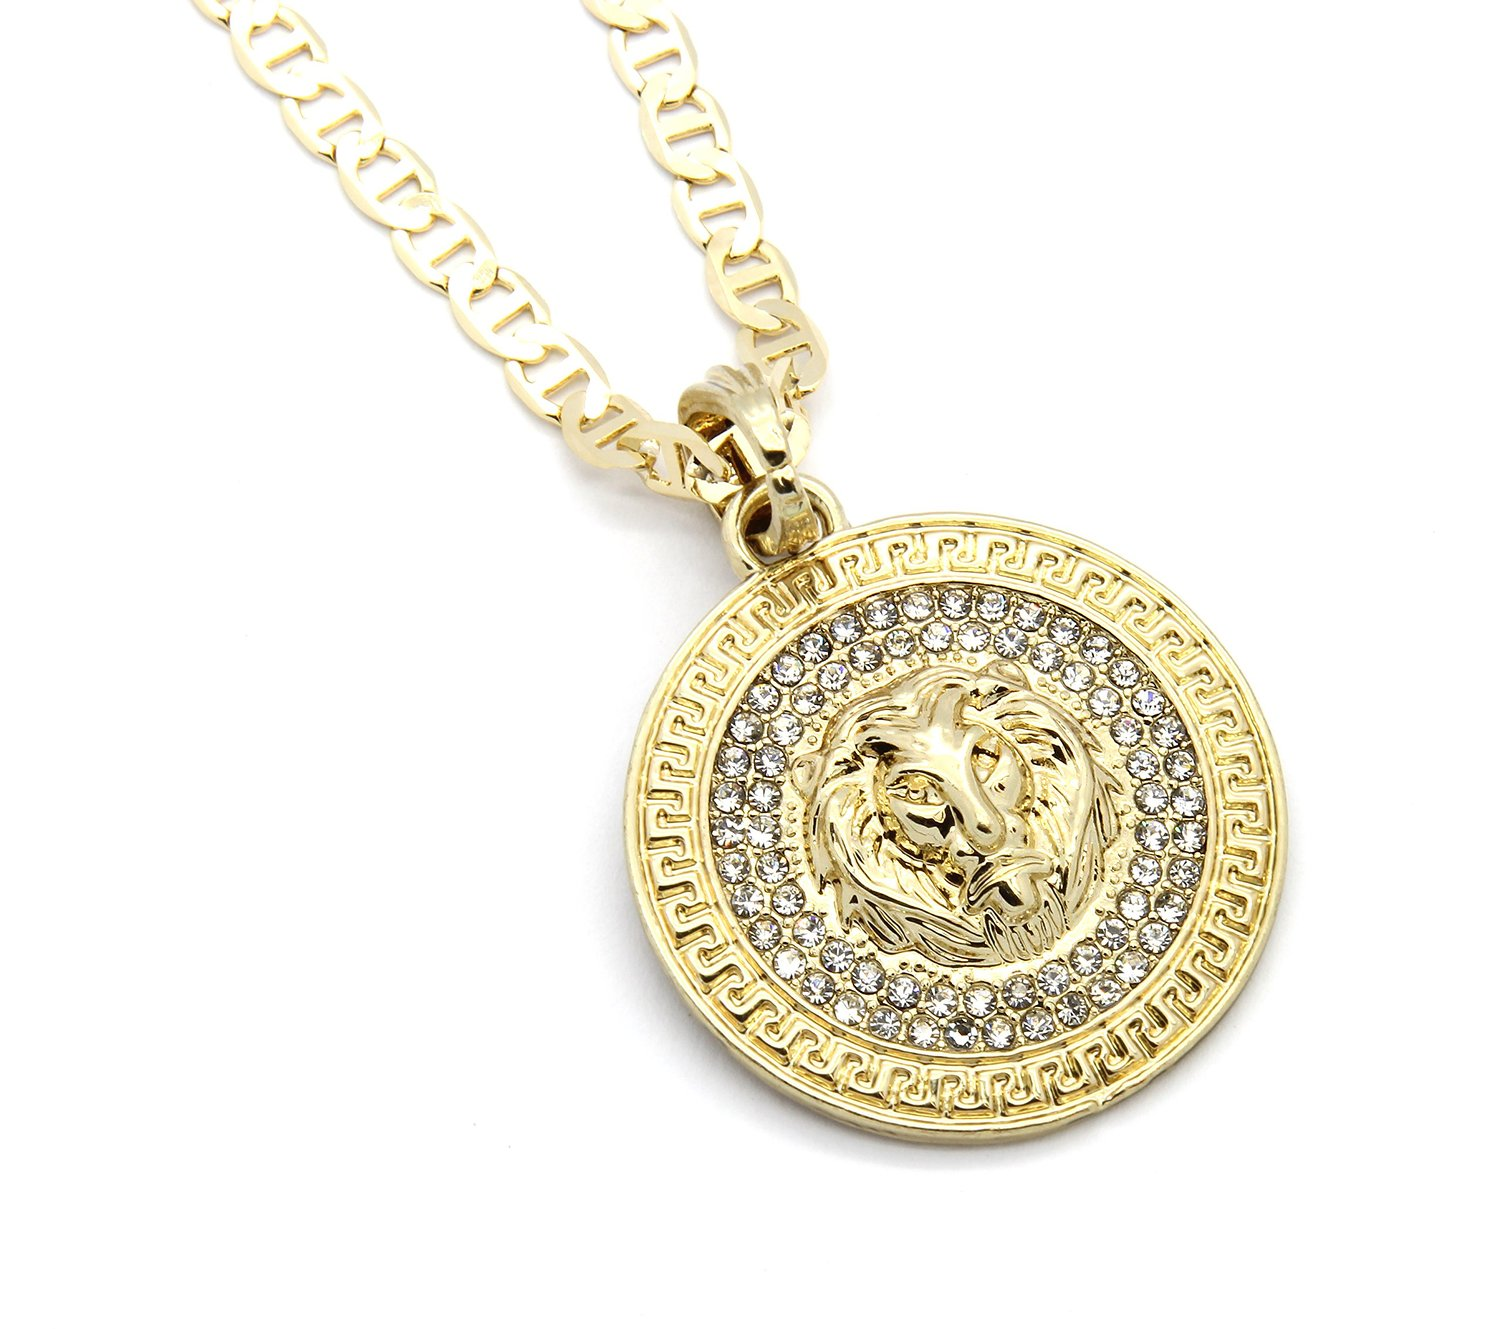 paul medallion white chain diamonds shaped co with pf gold pendant forrest